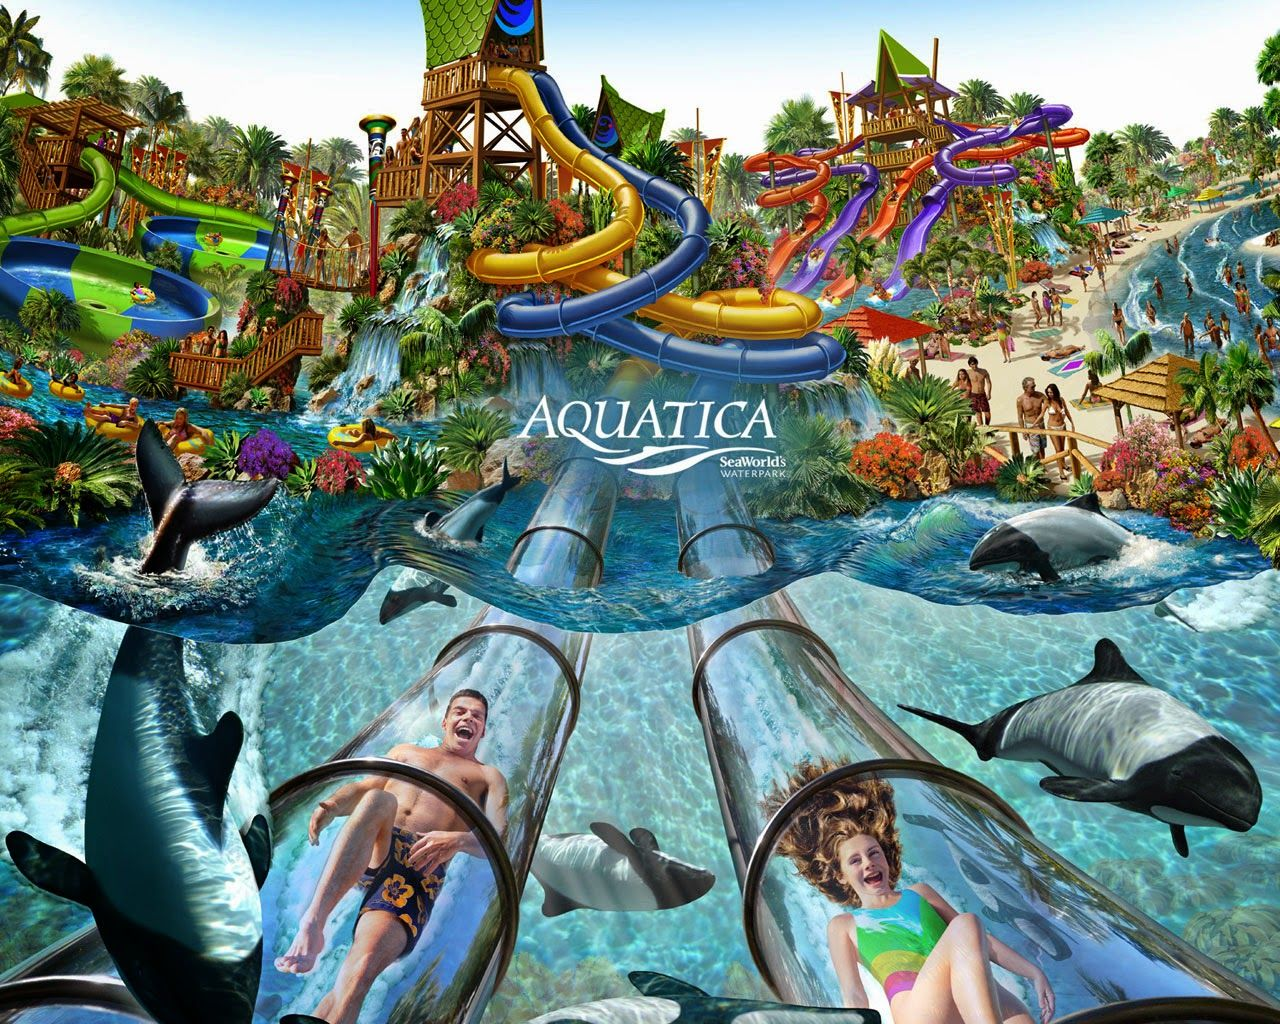 Amusement attraction seaworld aquatica orlando water park 2015 tour seaworld aquatica orlando water park 2015 tour and overview orlando florida jerrys hollywoodland amusement and trailer park gumiabroncs Choice Image